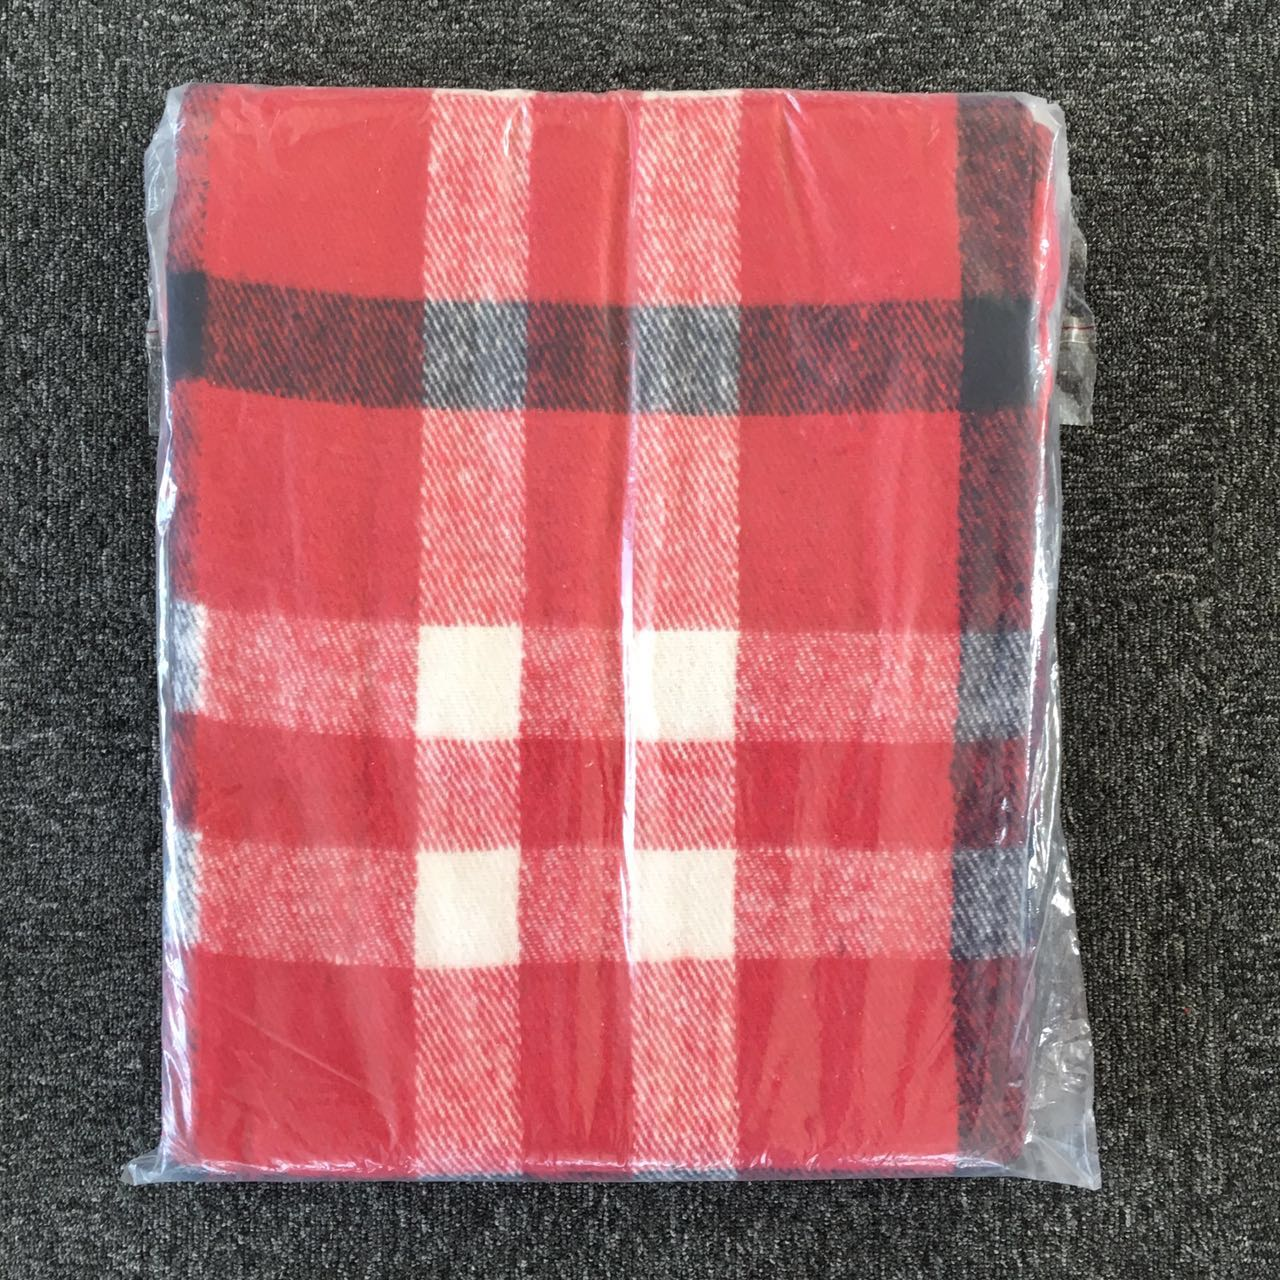 23635 - Scotch blankets Turkey